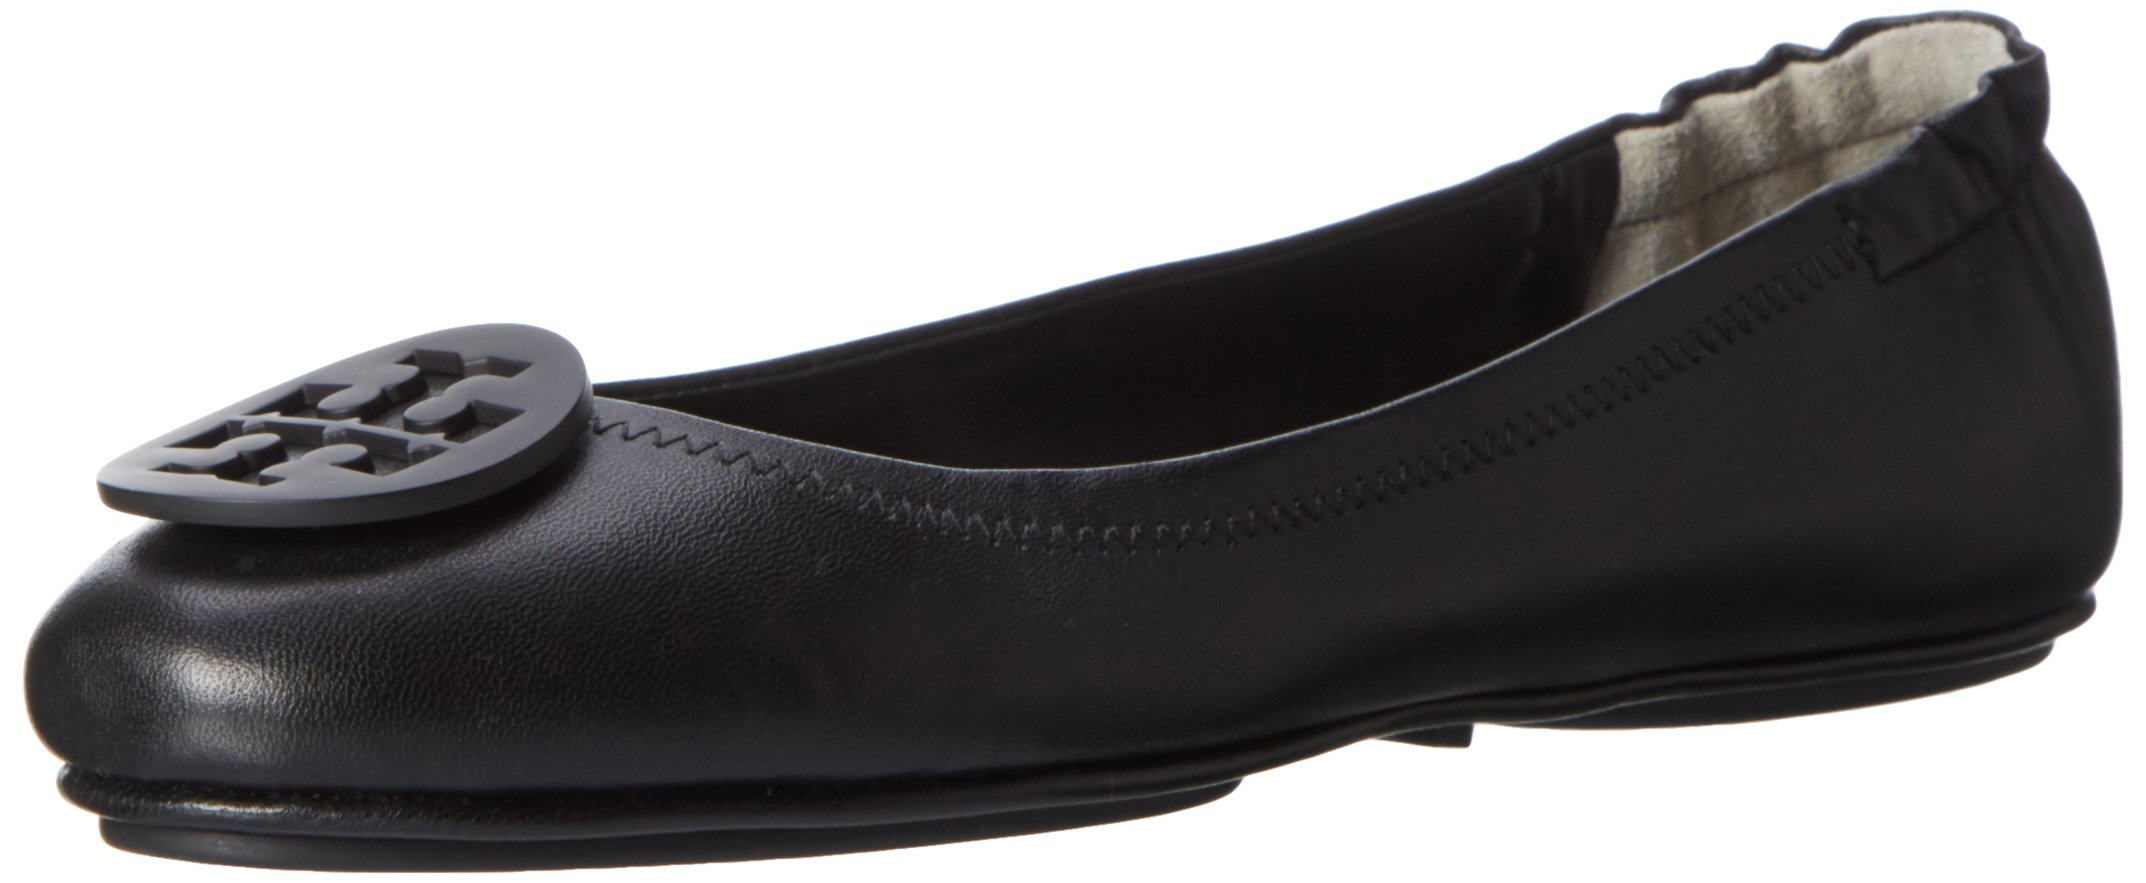 Tory Burch Minnie Travel Ballet Flats in Black, Black, Size 7.0 by Tory Burch